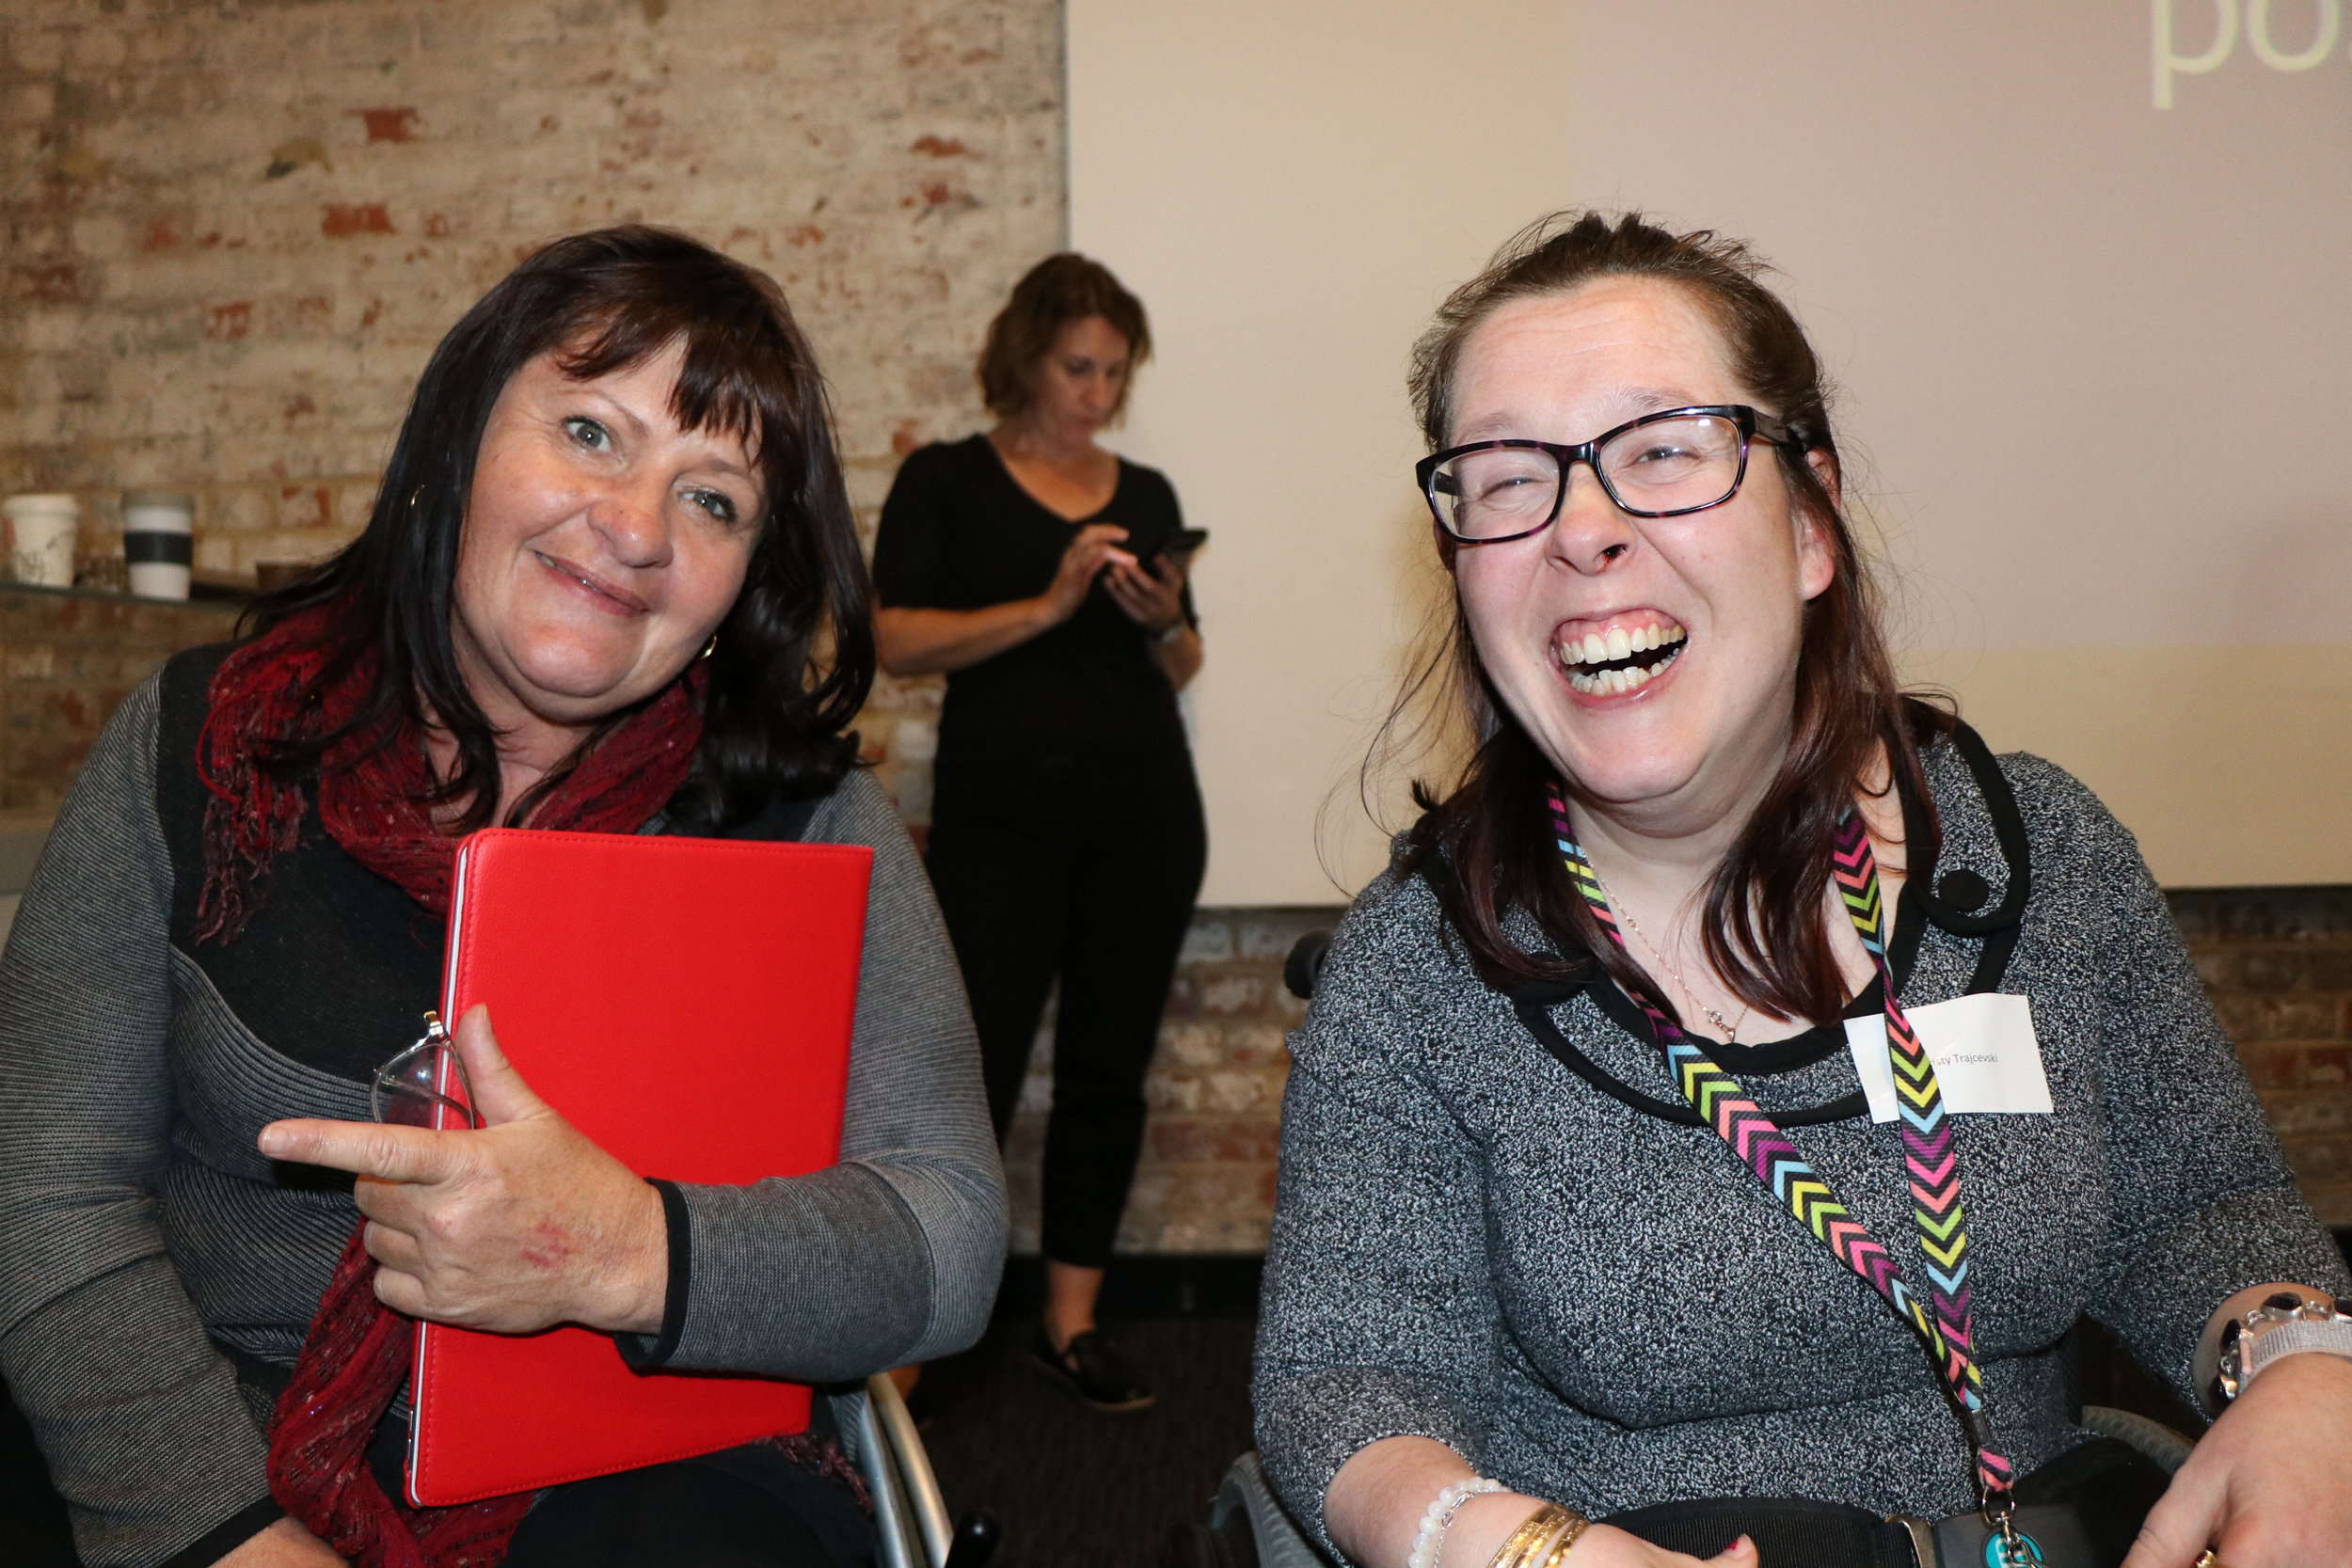 Two women smile broadly at the camera. One of them is holding a red folder in her left arm. Behind them stands another woman who is looking at her smart phone.